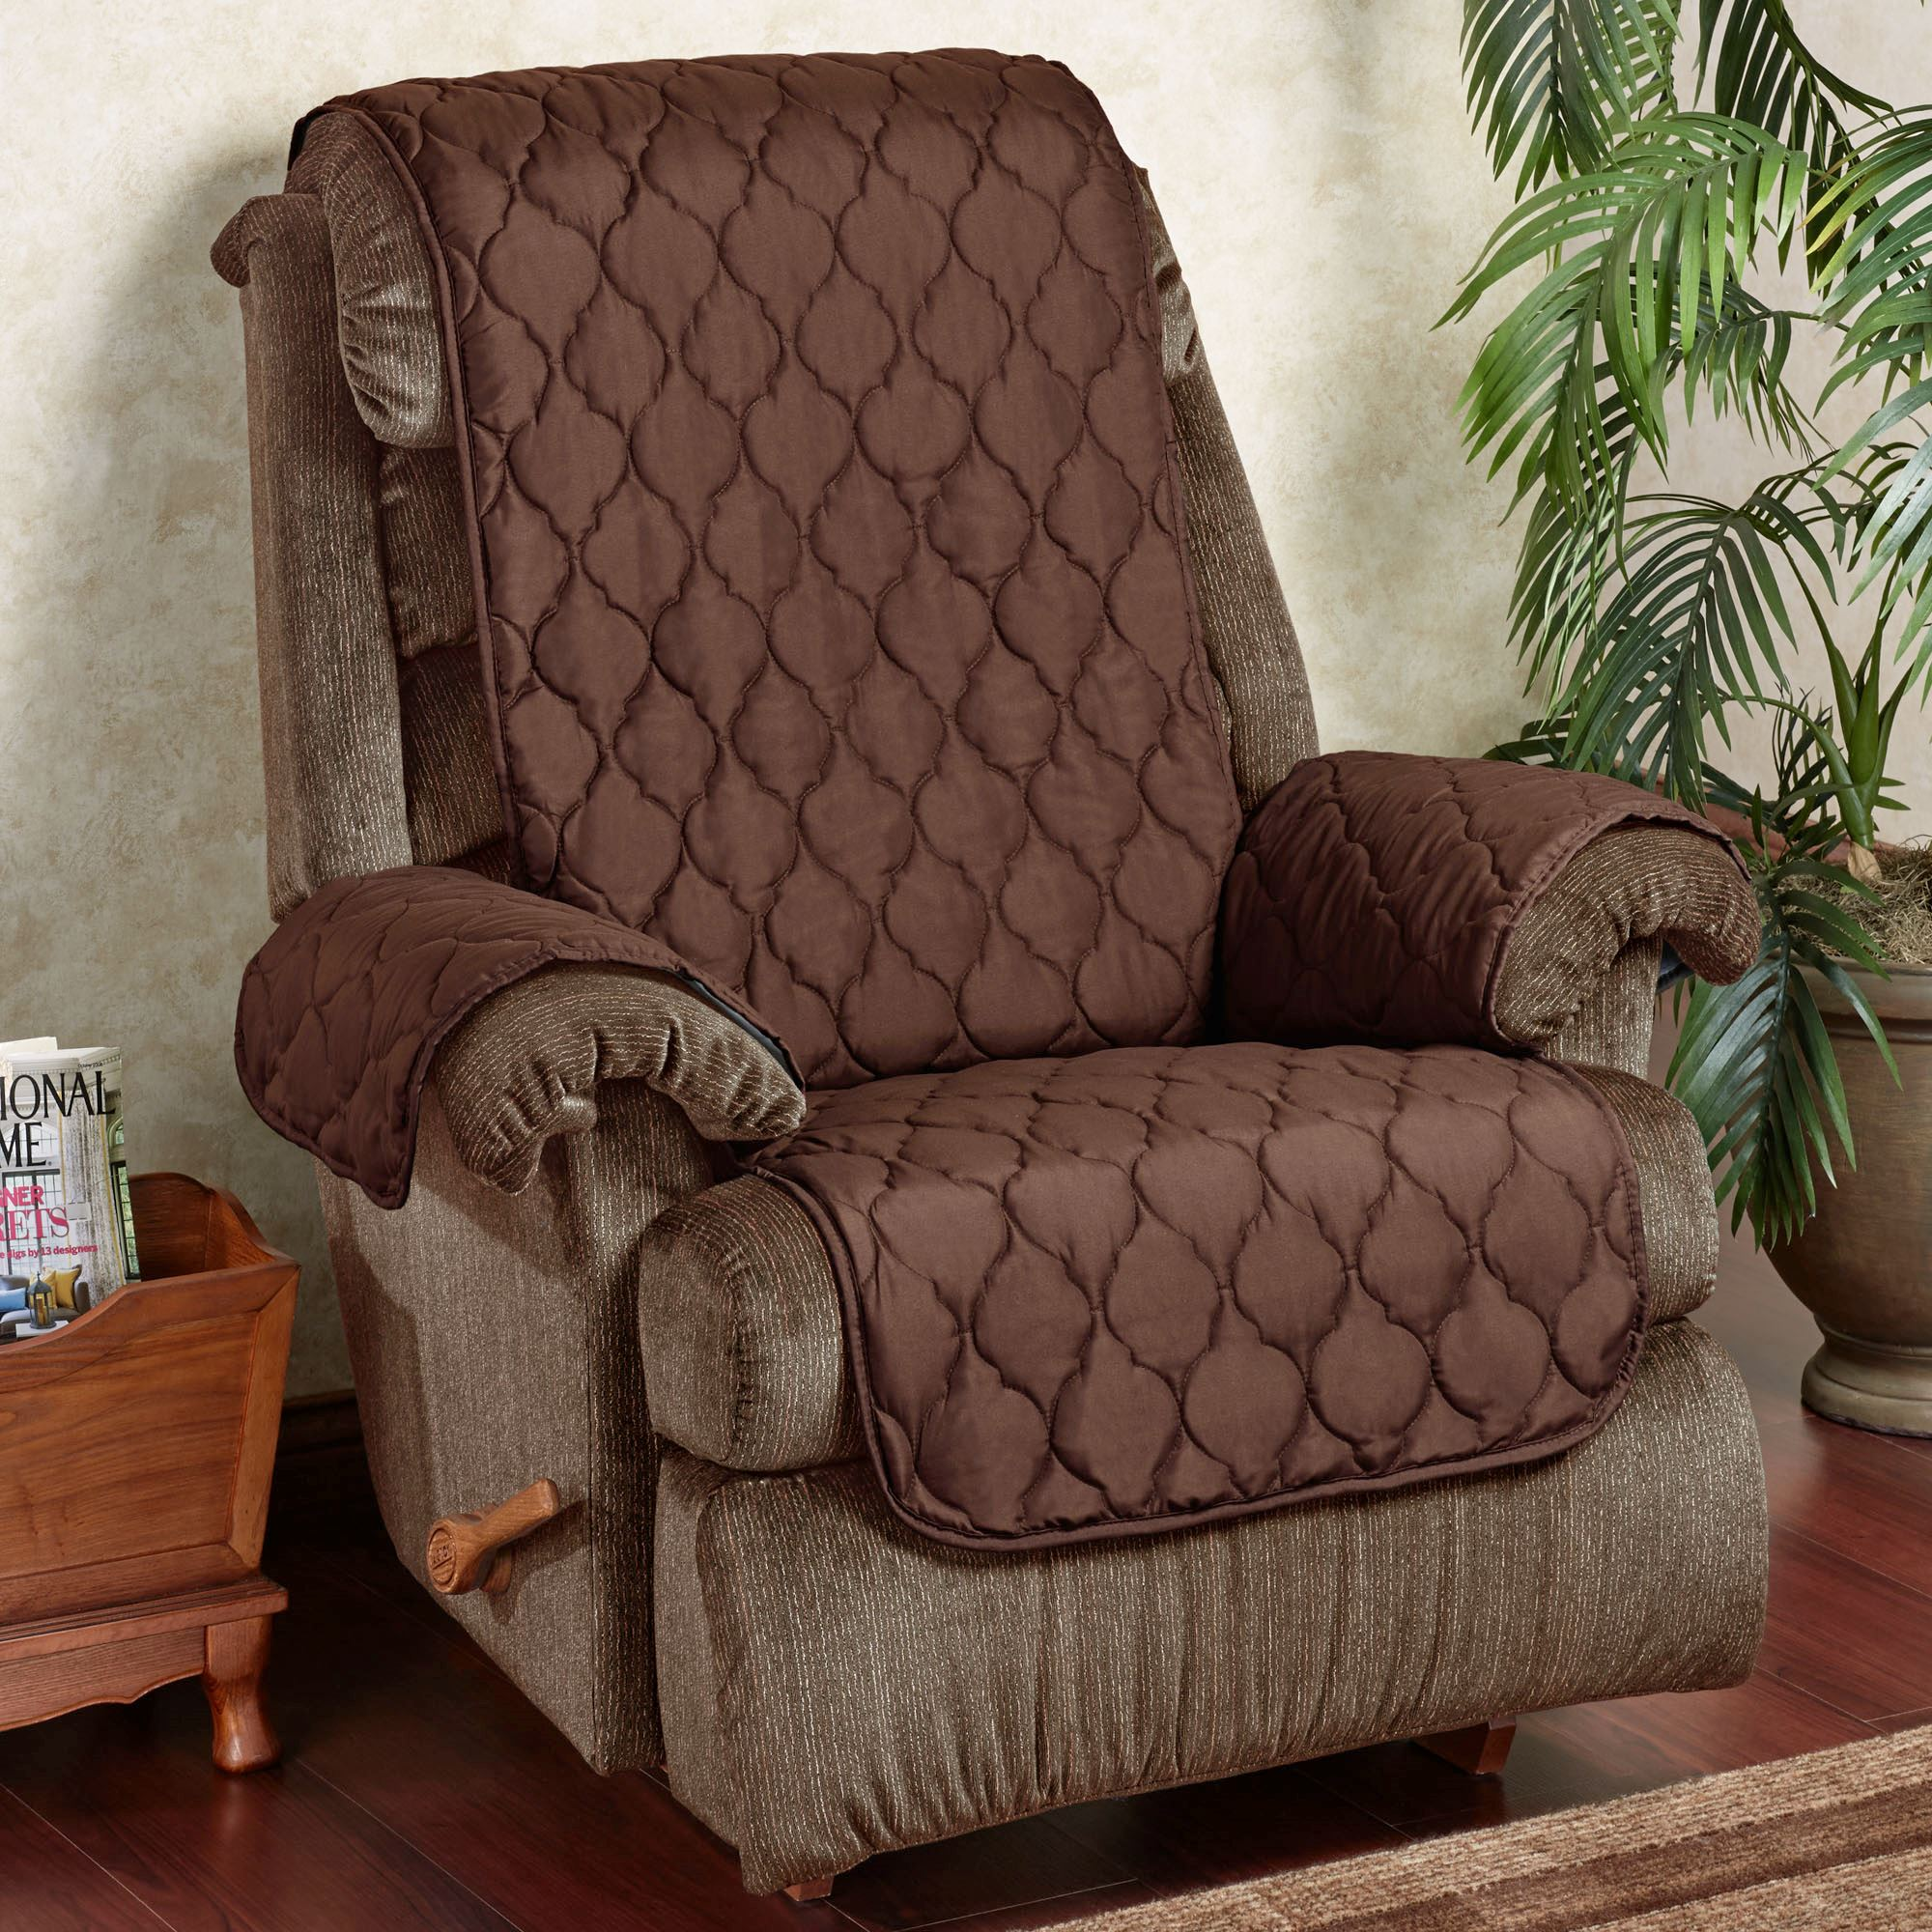 Terrific Paramount Solid Color Quilted Furniture Protectors Machost Co Dining Chair Design Ideas Machostcouk